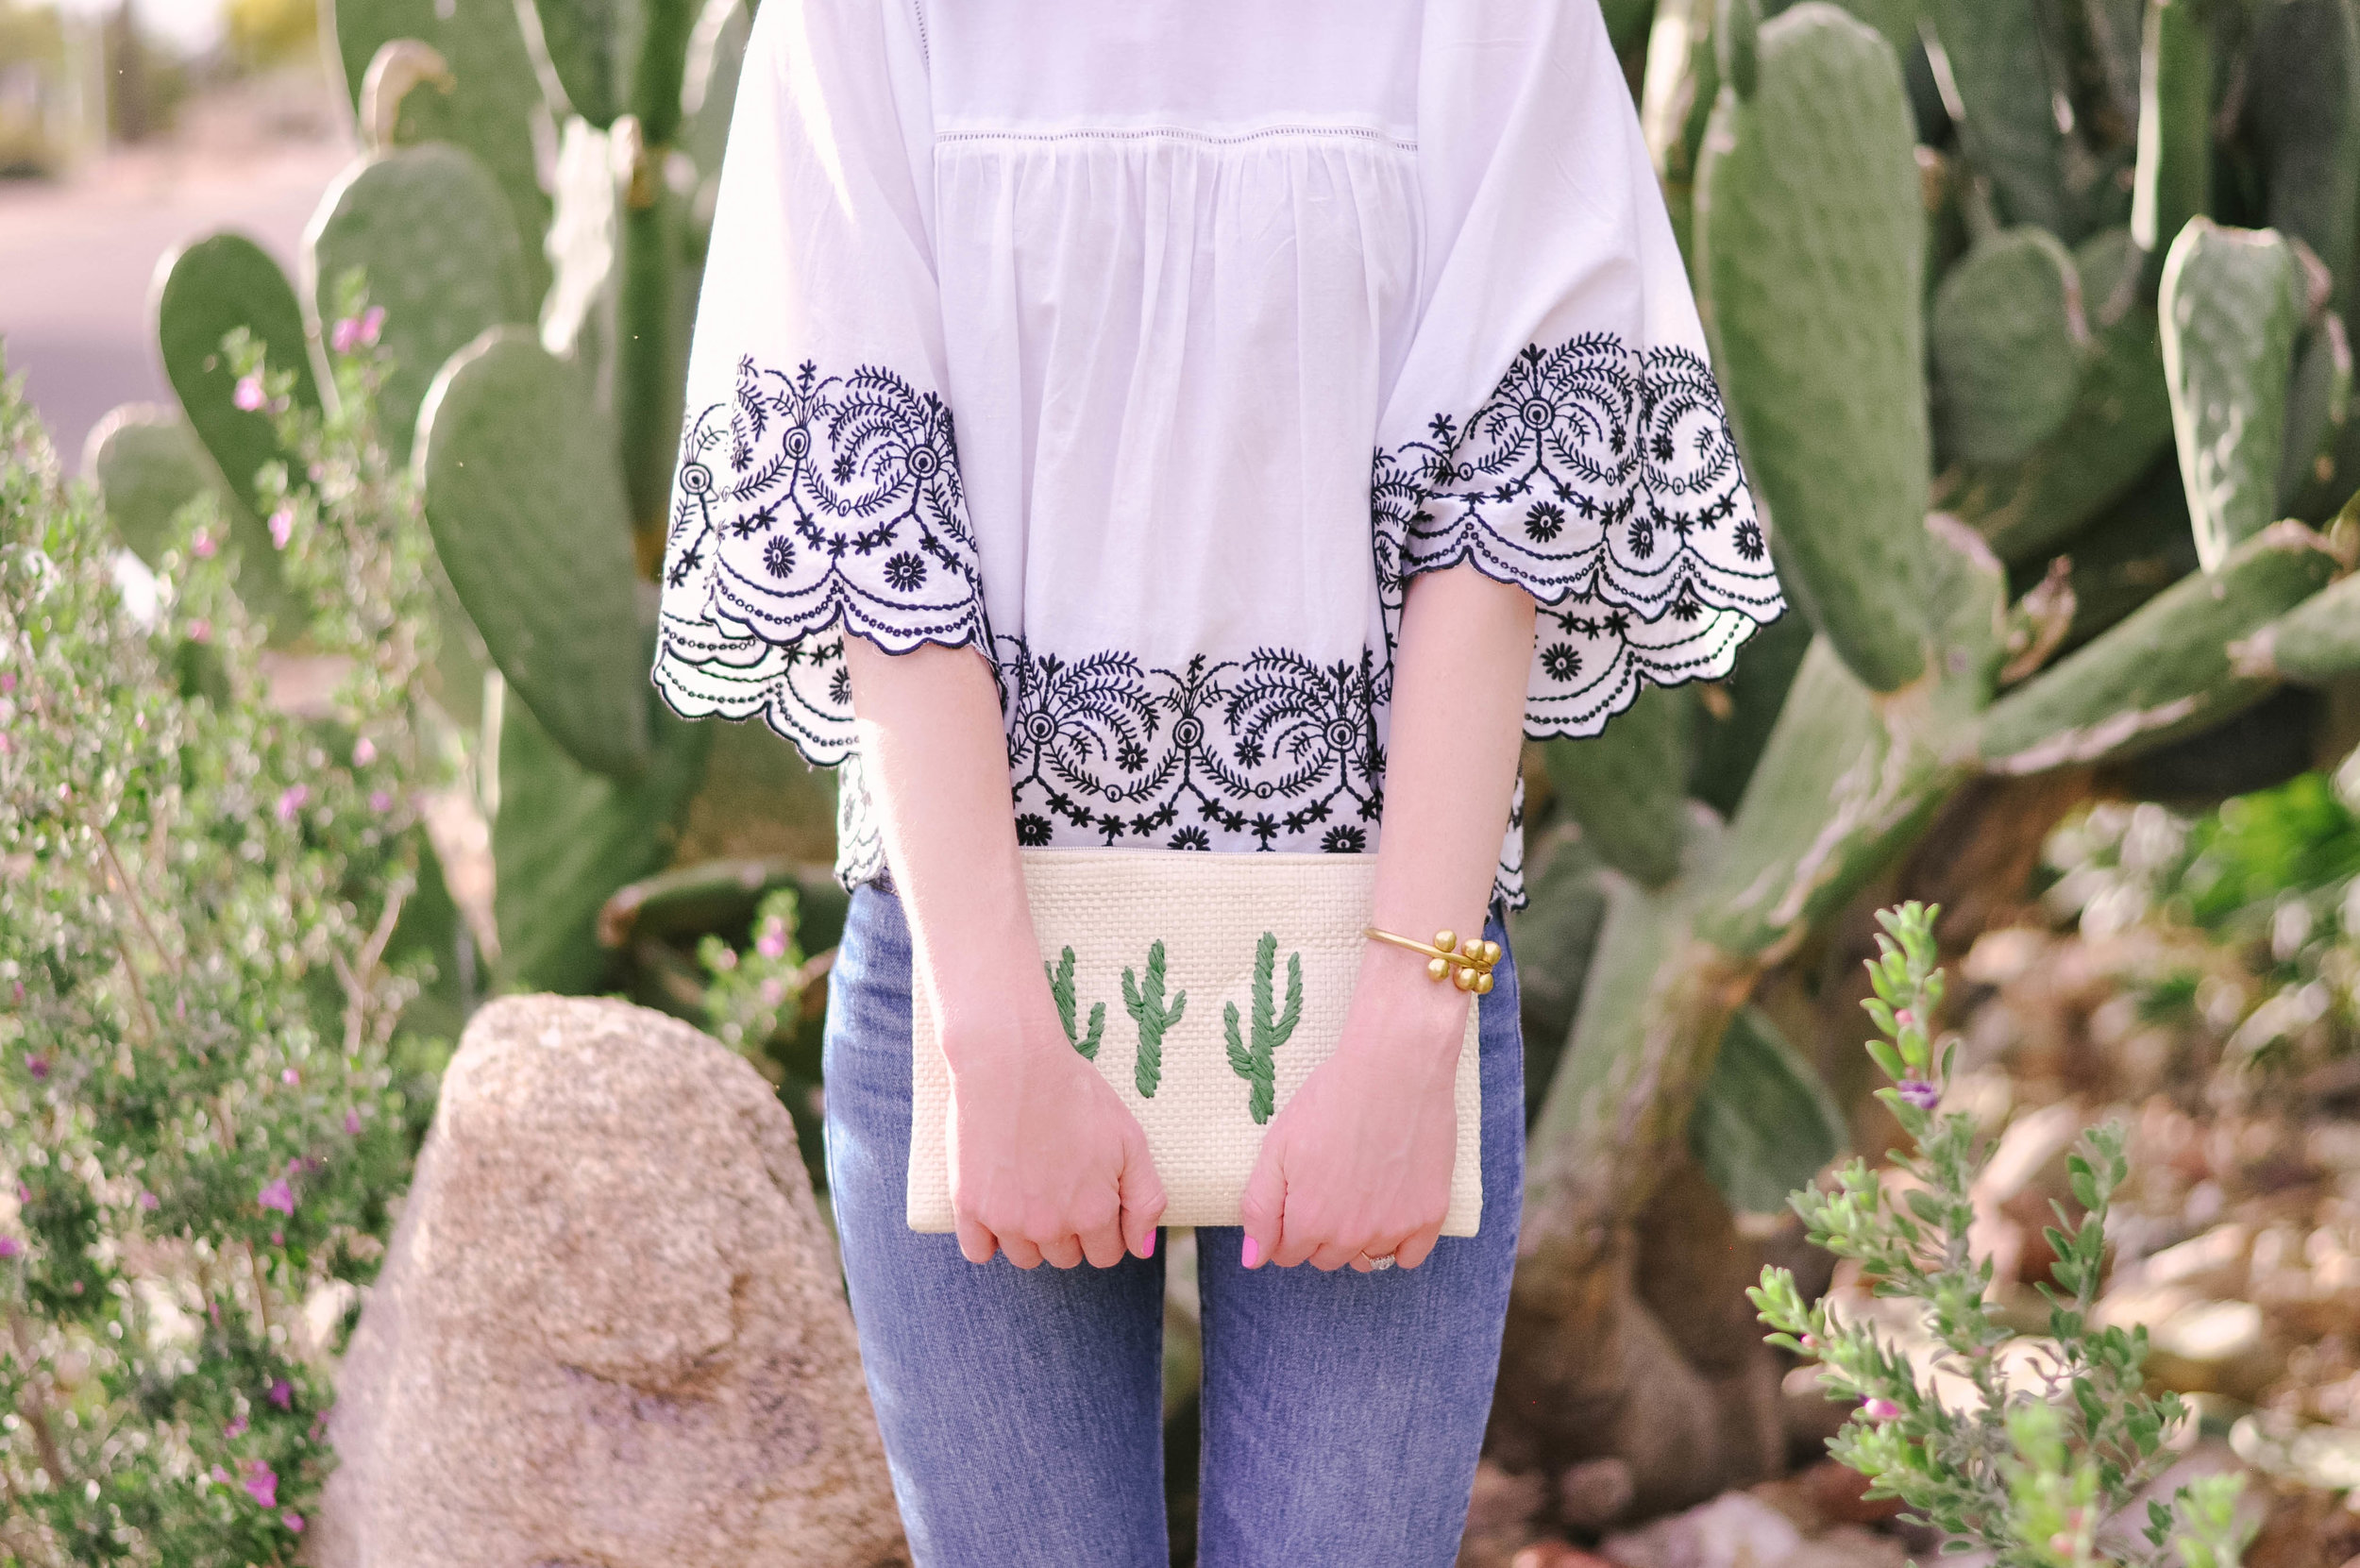 Woman in white top and cactus clutch